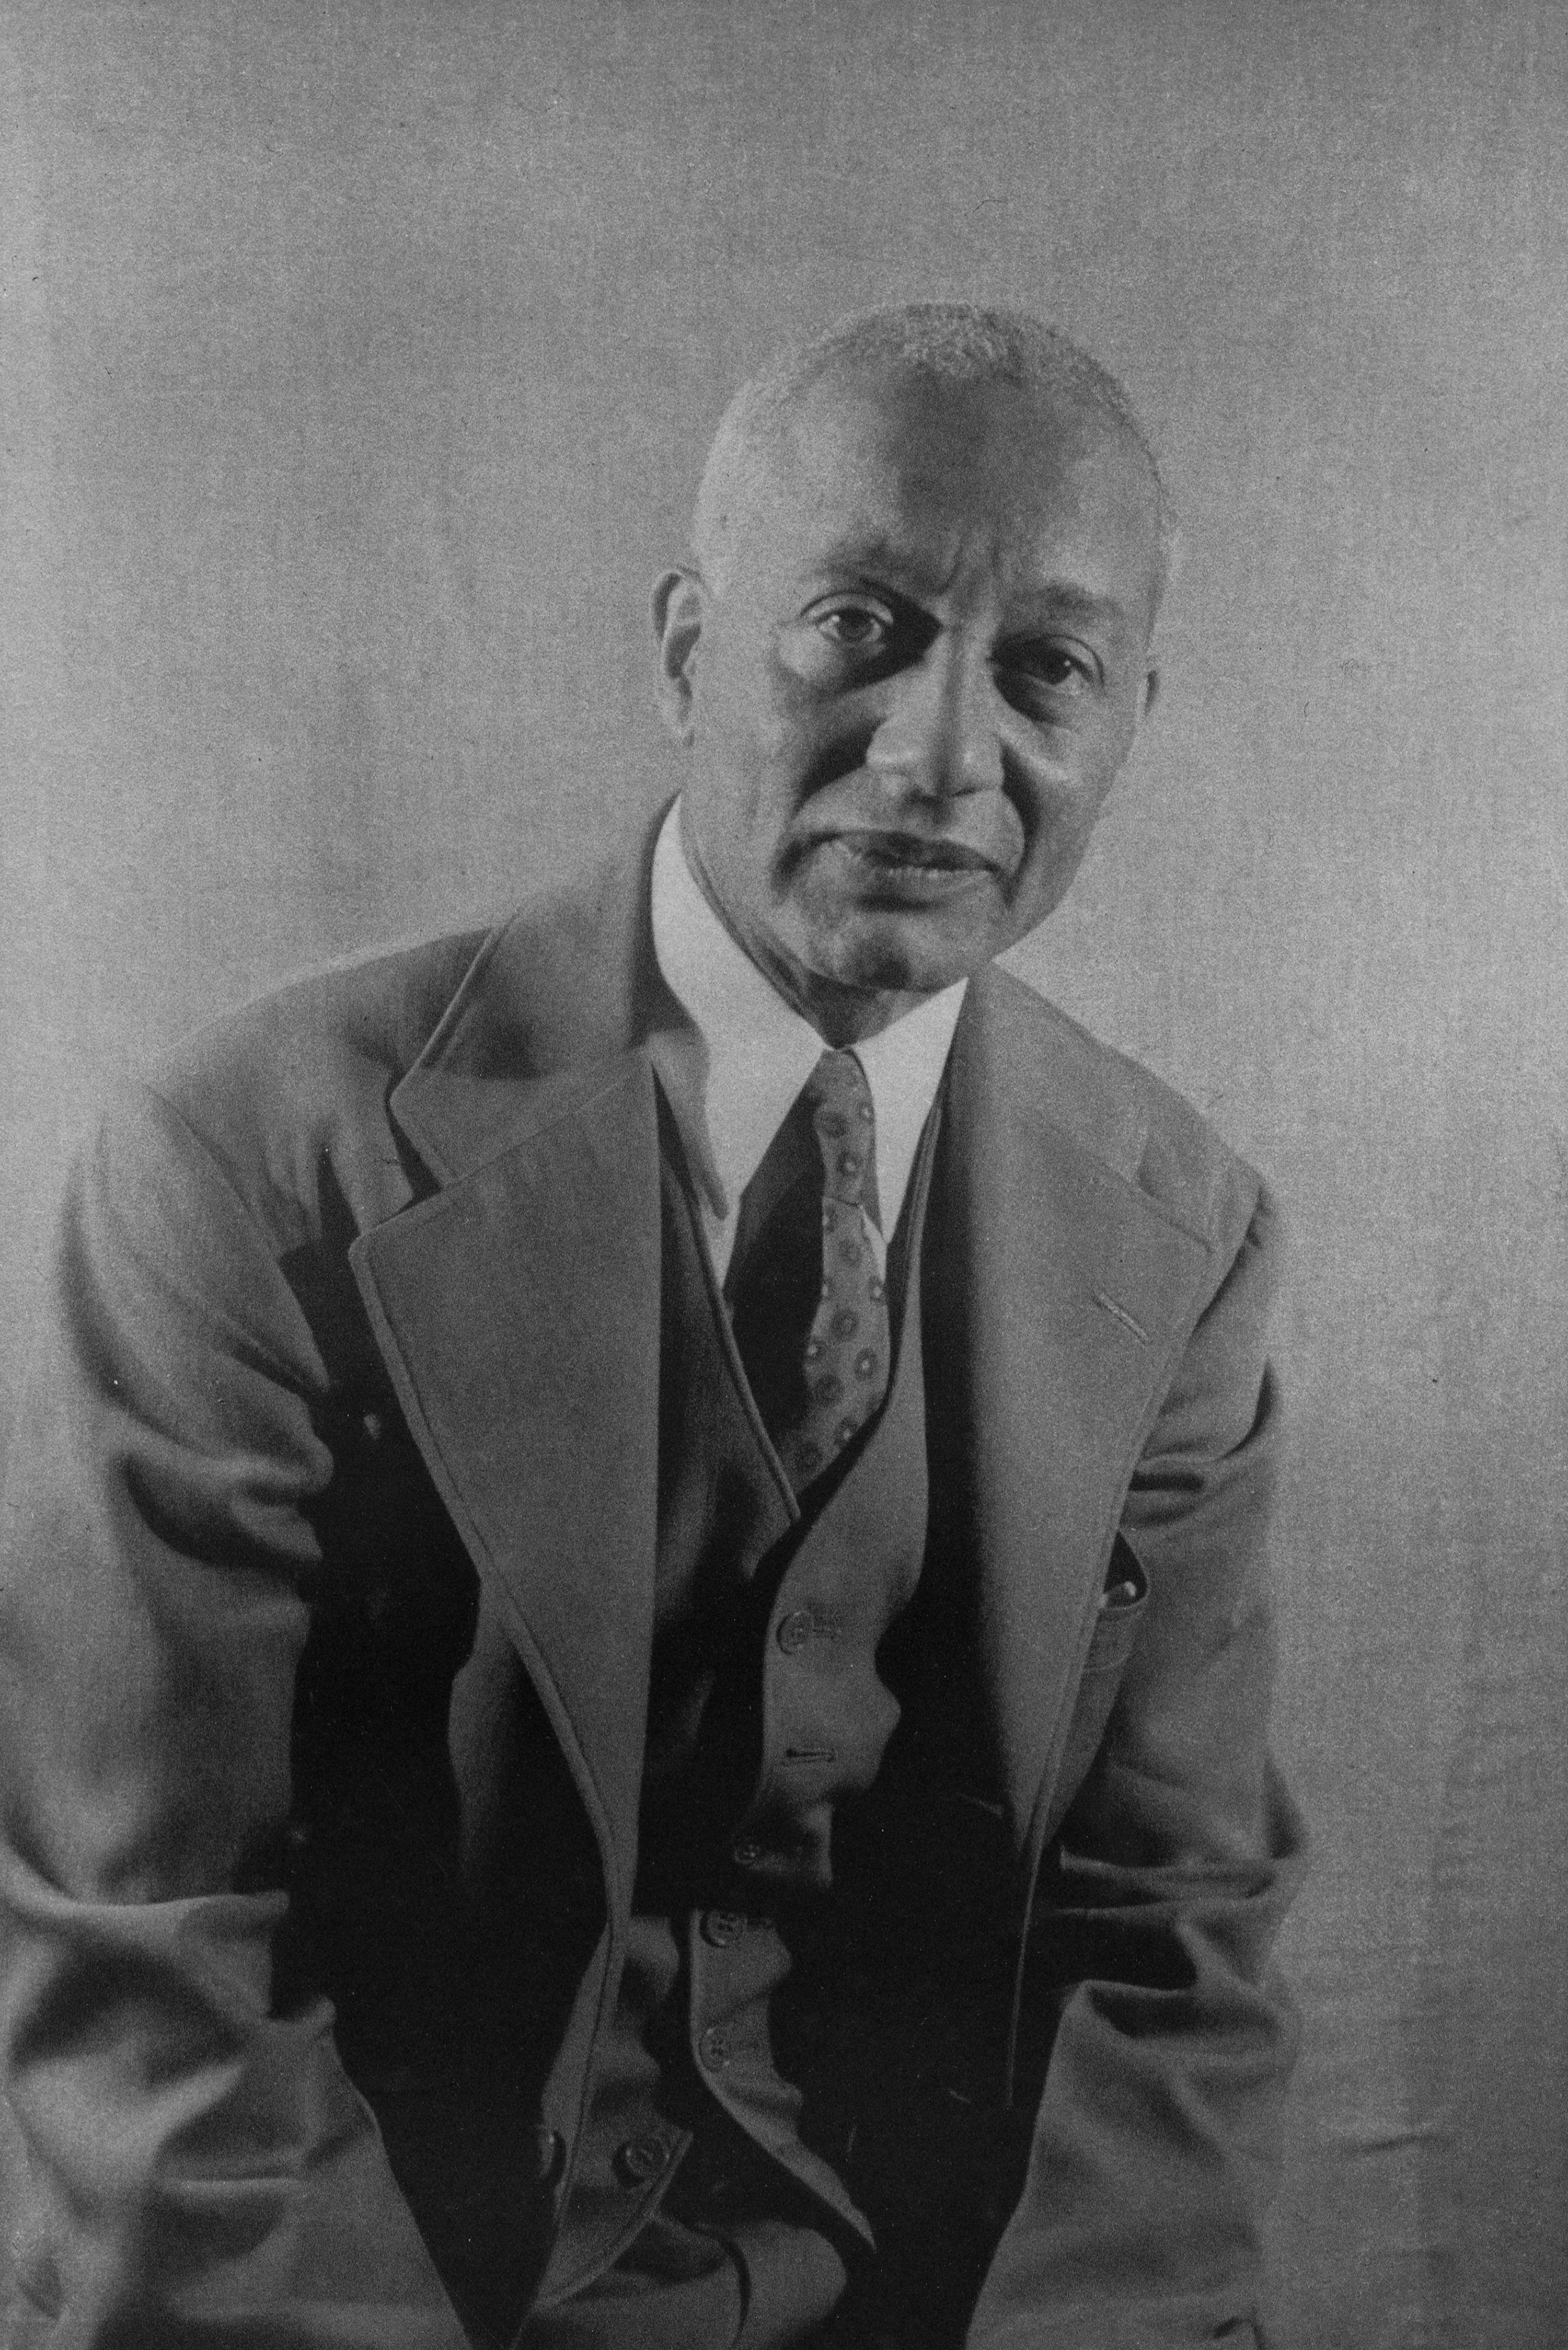 alain leroy locke essay Alain leroy locke (1886-1954) was an american educator, writer, and philosopher, who is best remembered as the chief interpreter of the harlem renaissanc.